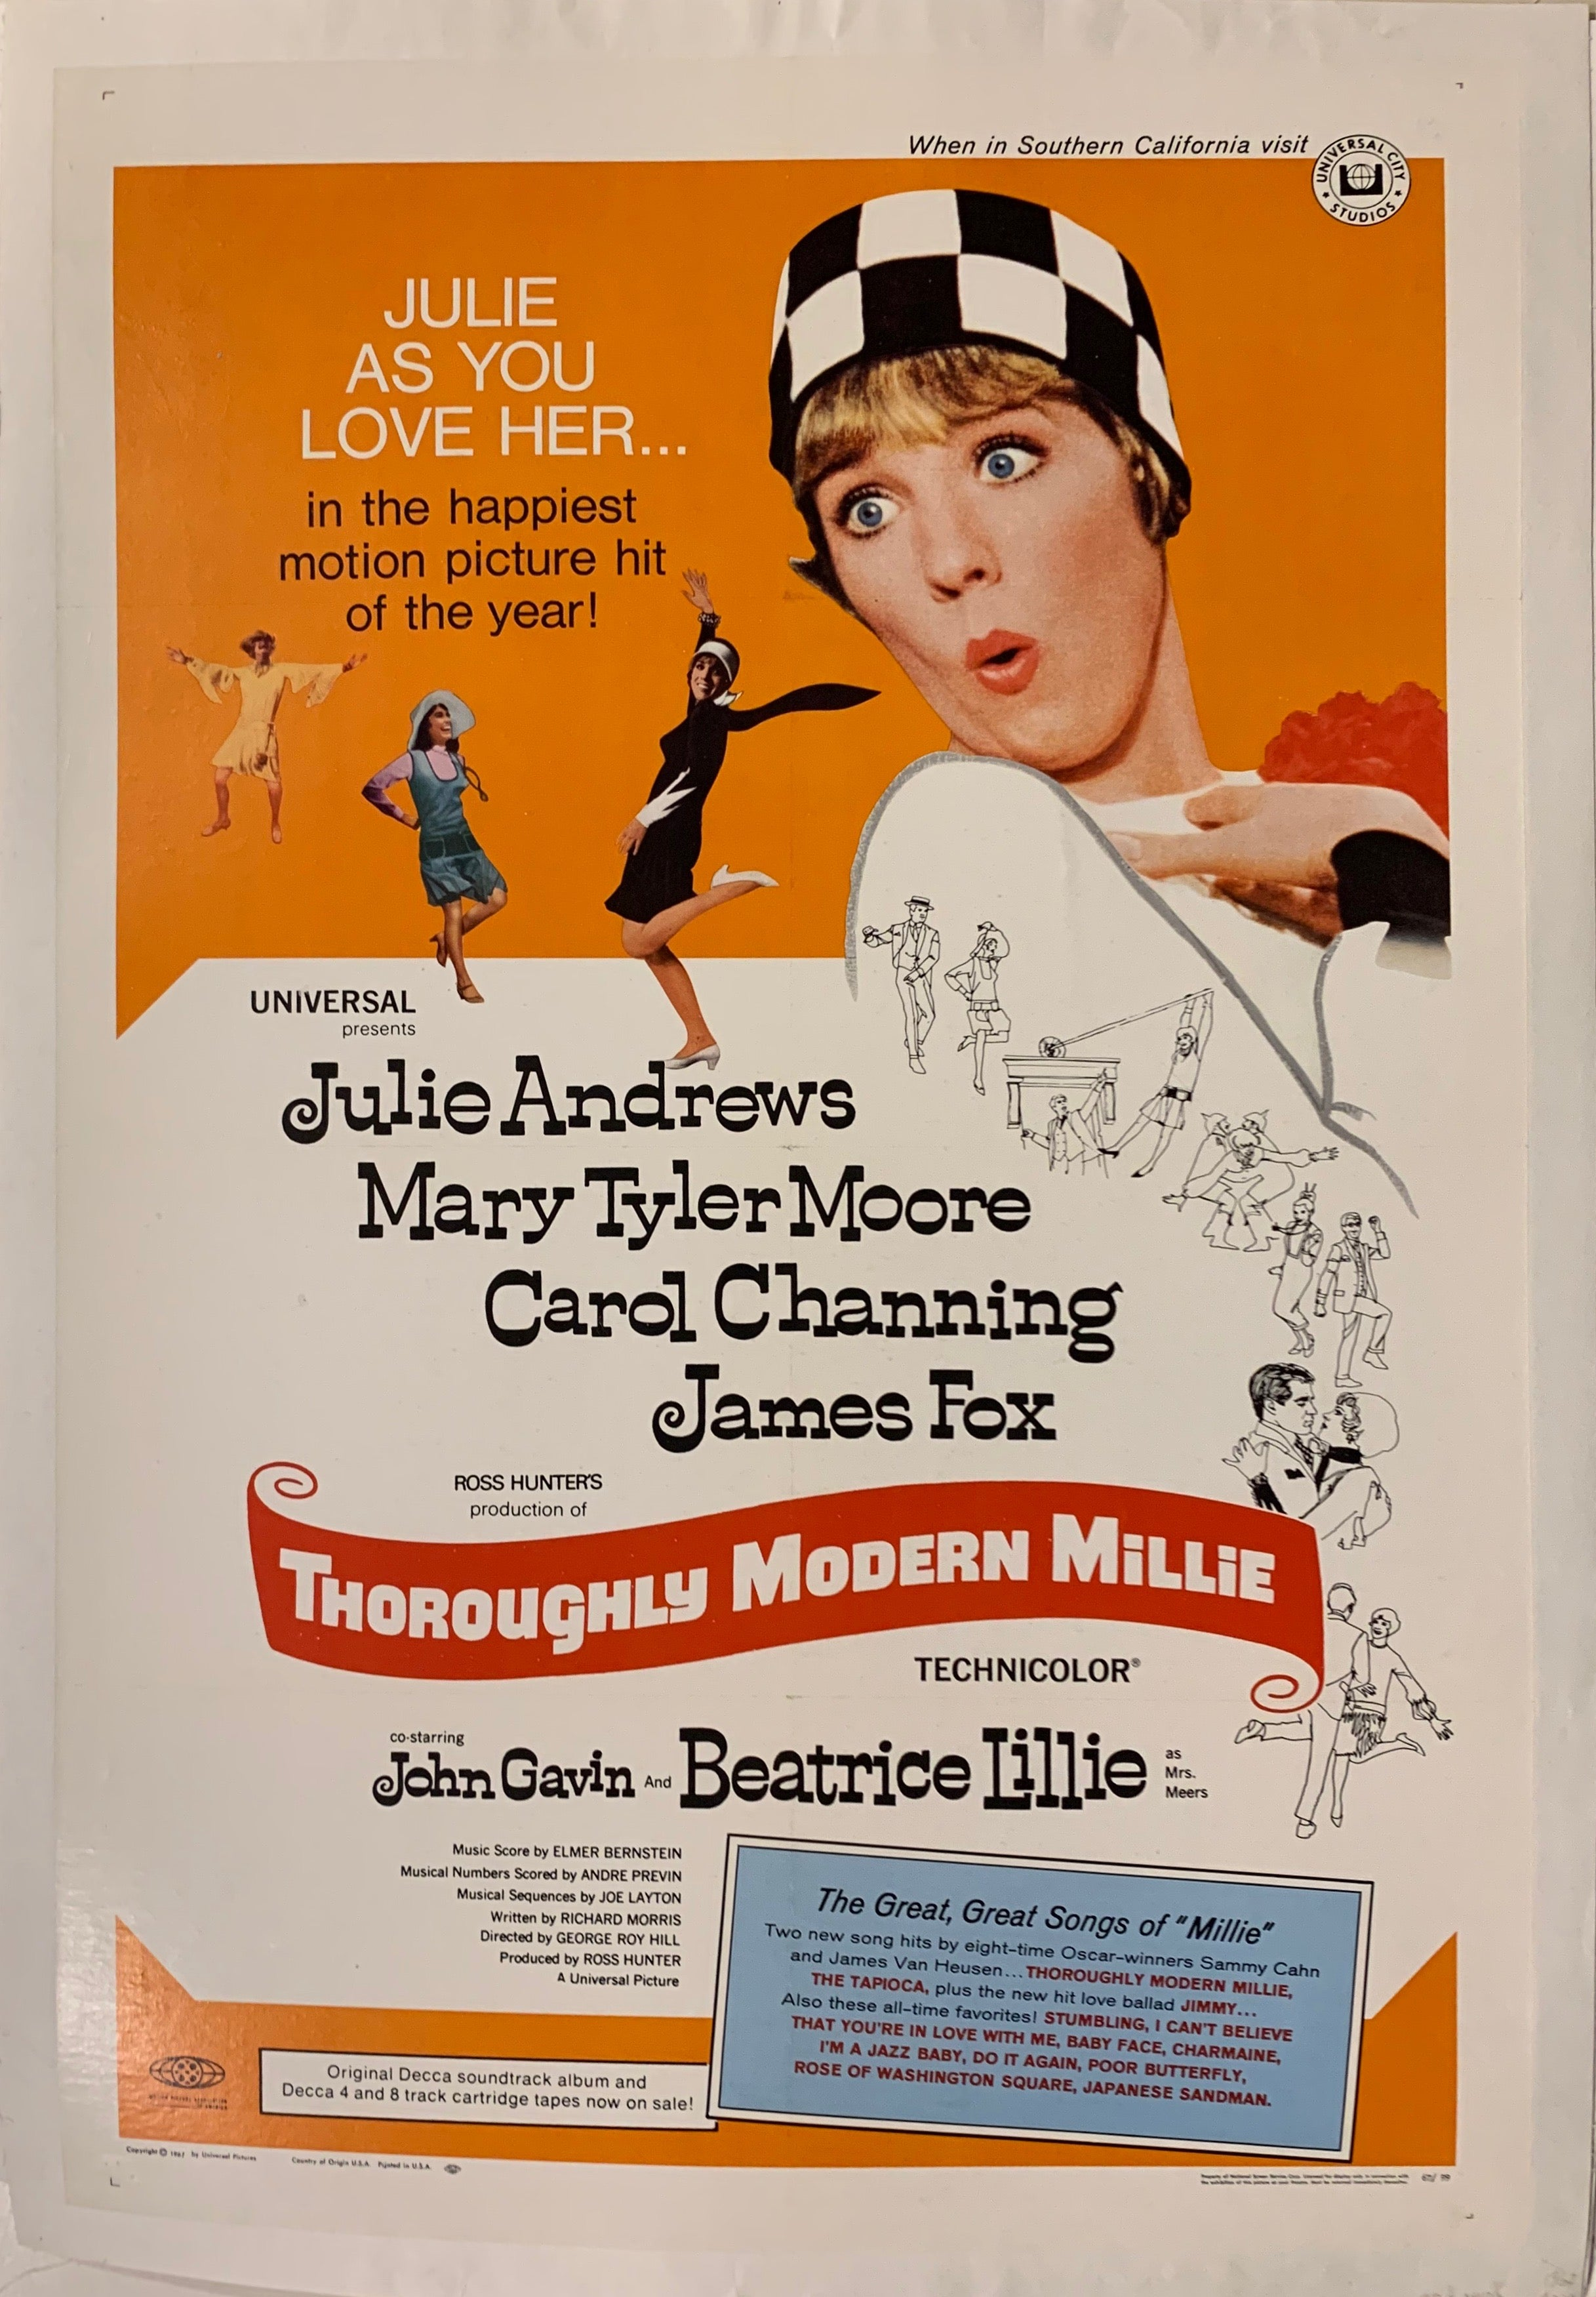 Thoroughly Modern Millie Film Poster